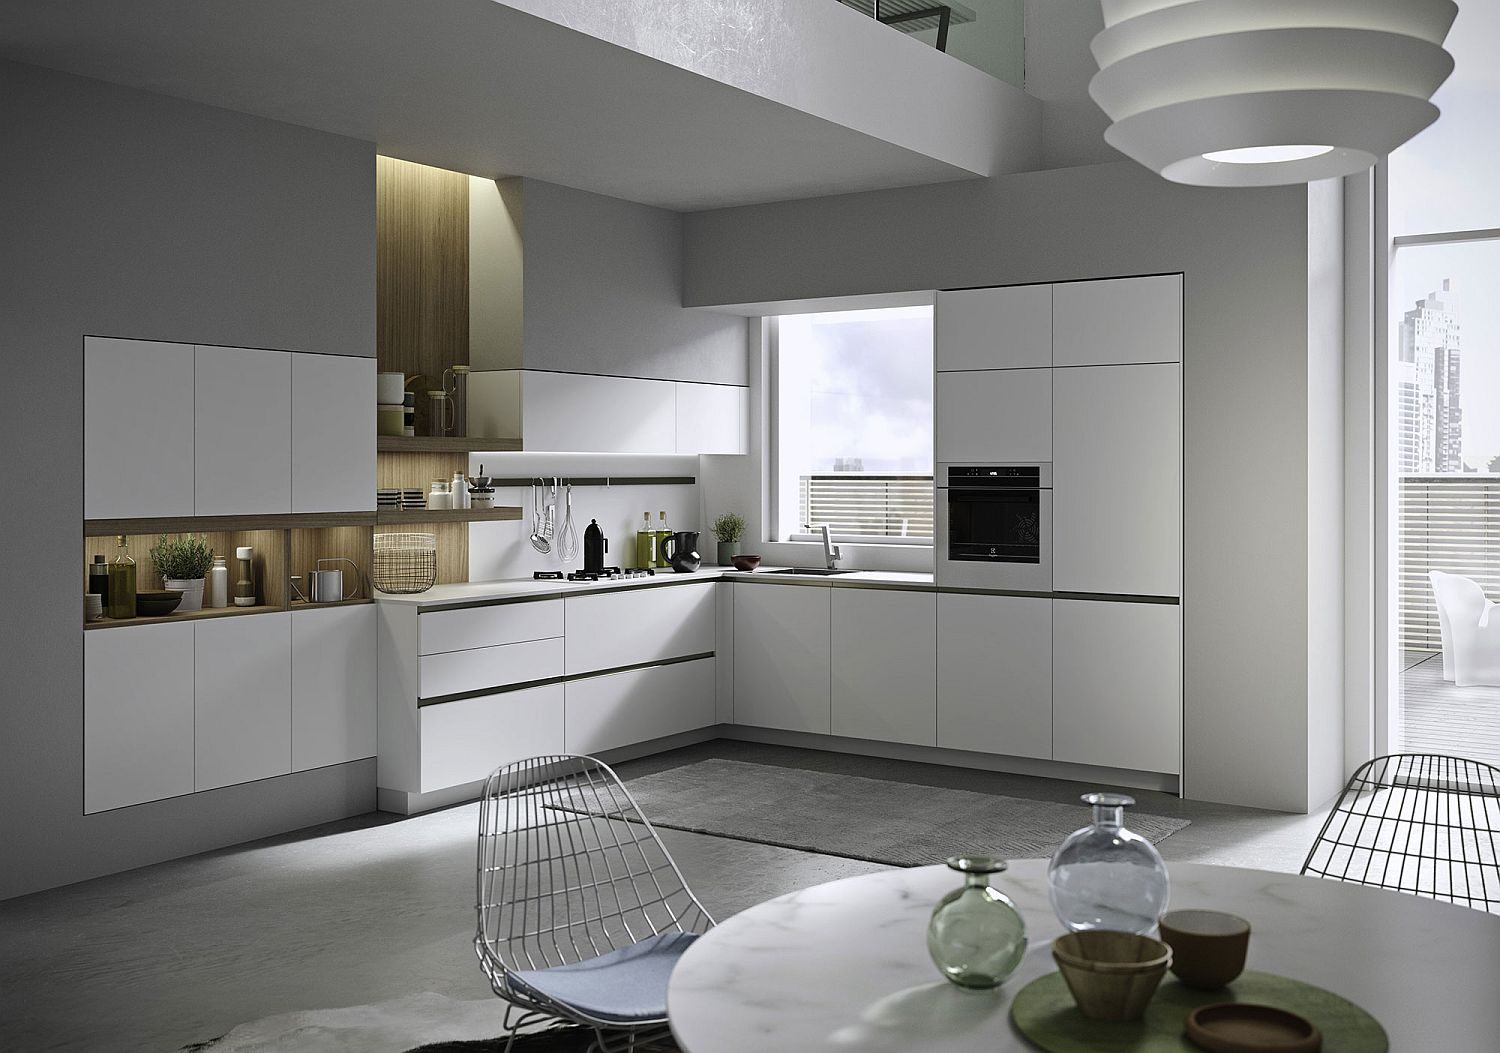 L-shaped wall kitchen in white with wooden backsplash